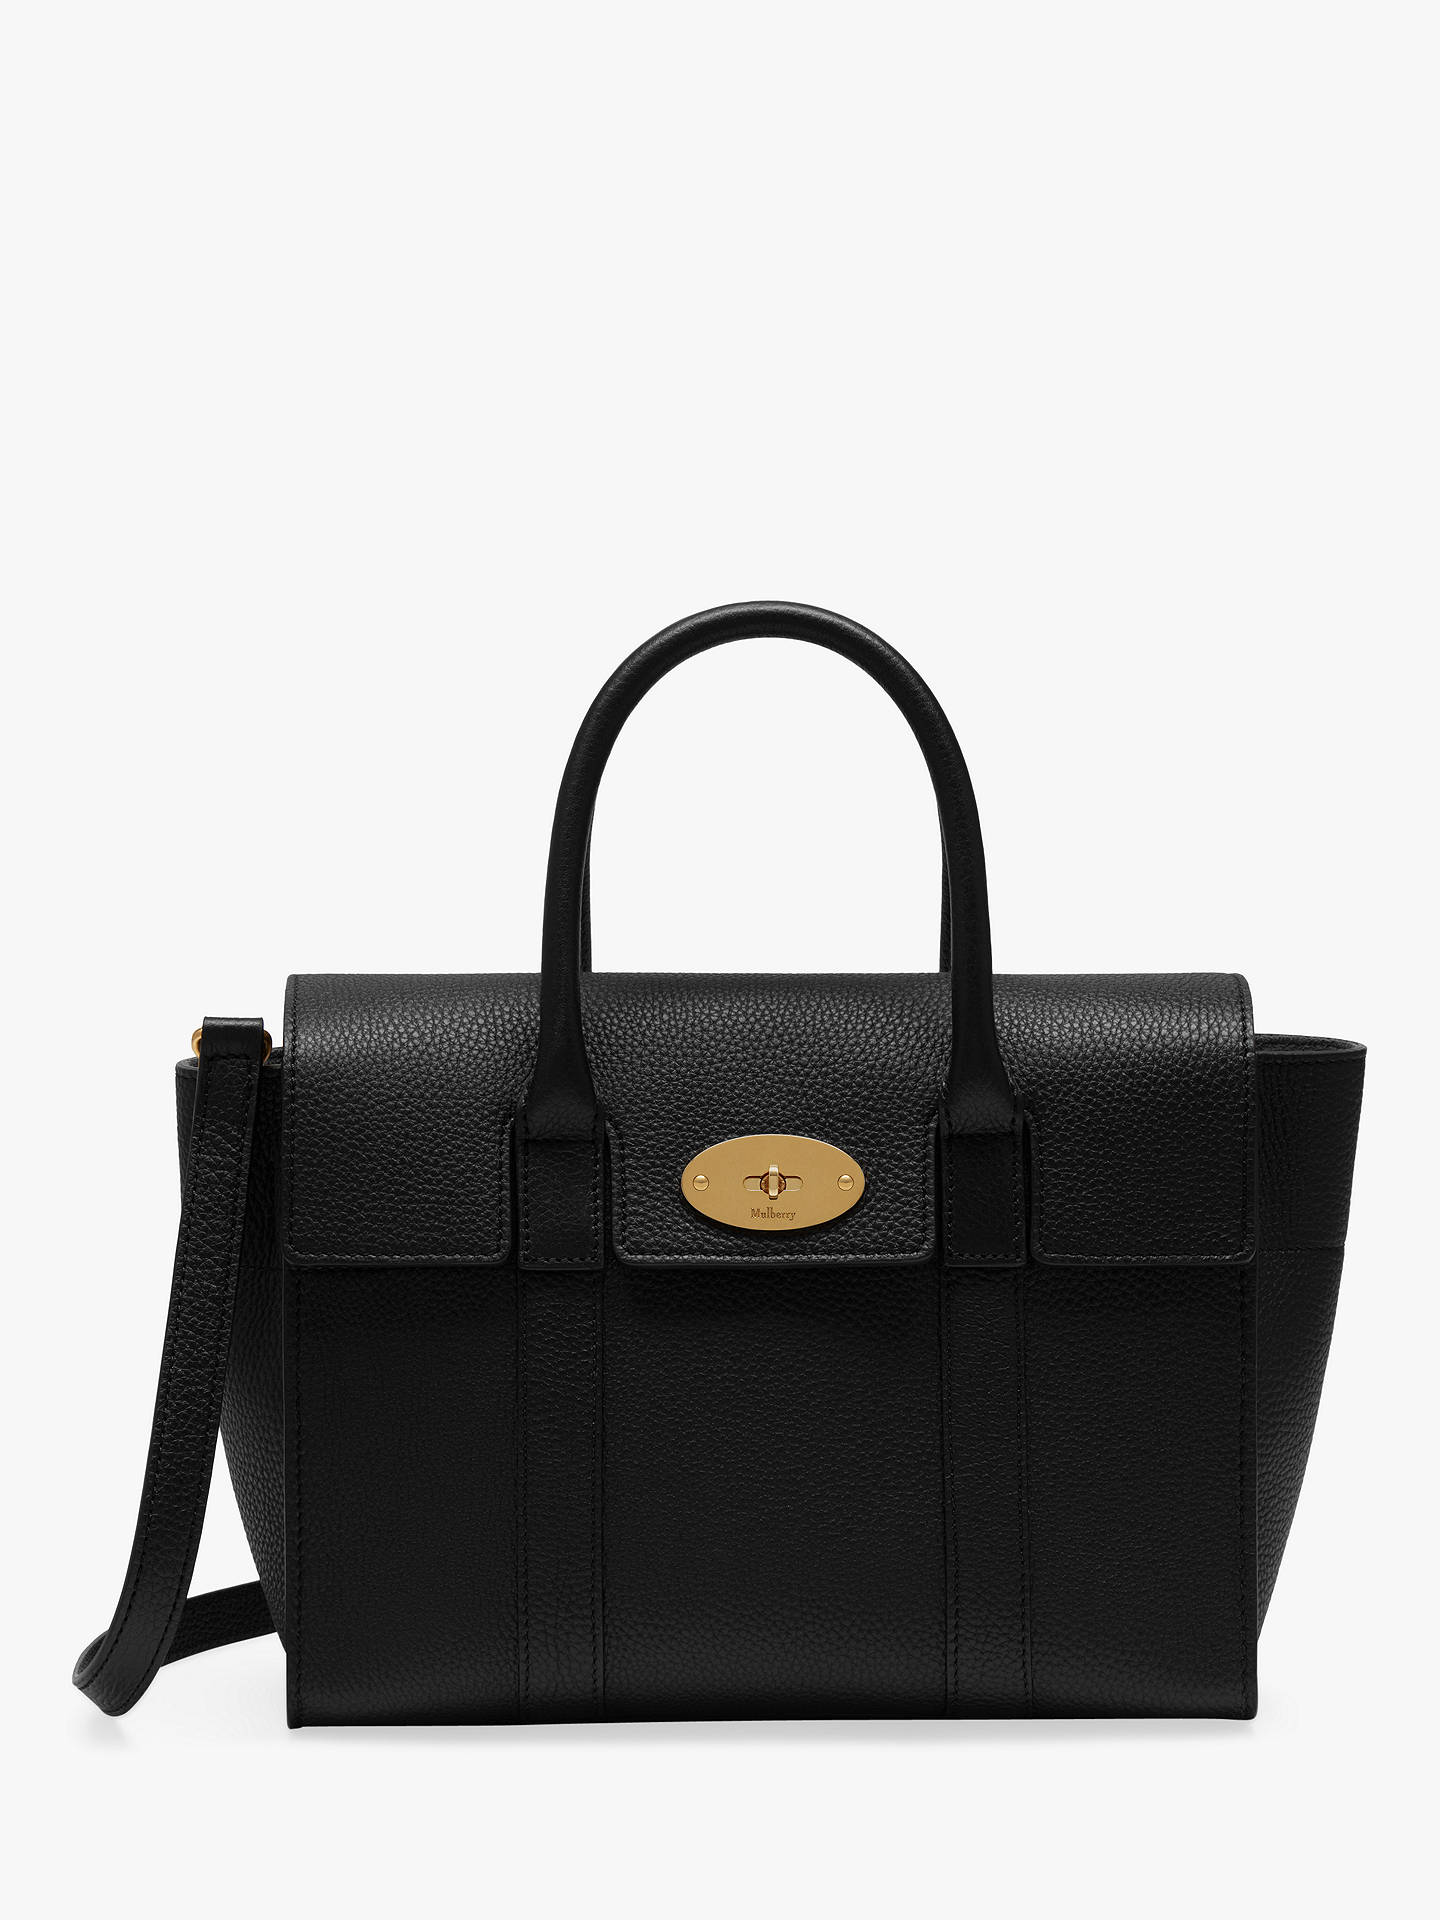 a82937cc9 Buy Mulberry Small Bayswater Small Classic Grain Leather Satchel Bag, Black/Gold  Online at ...